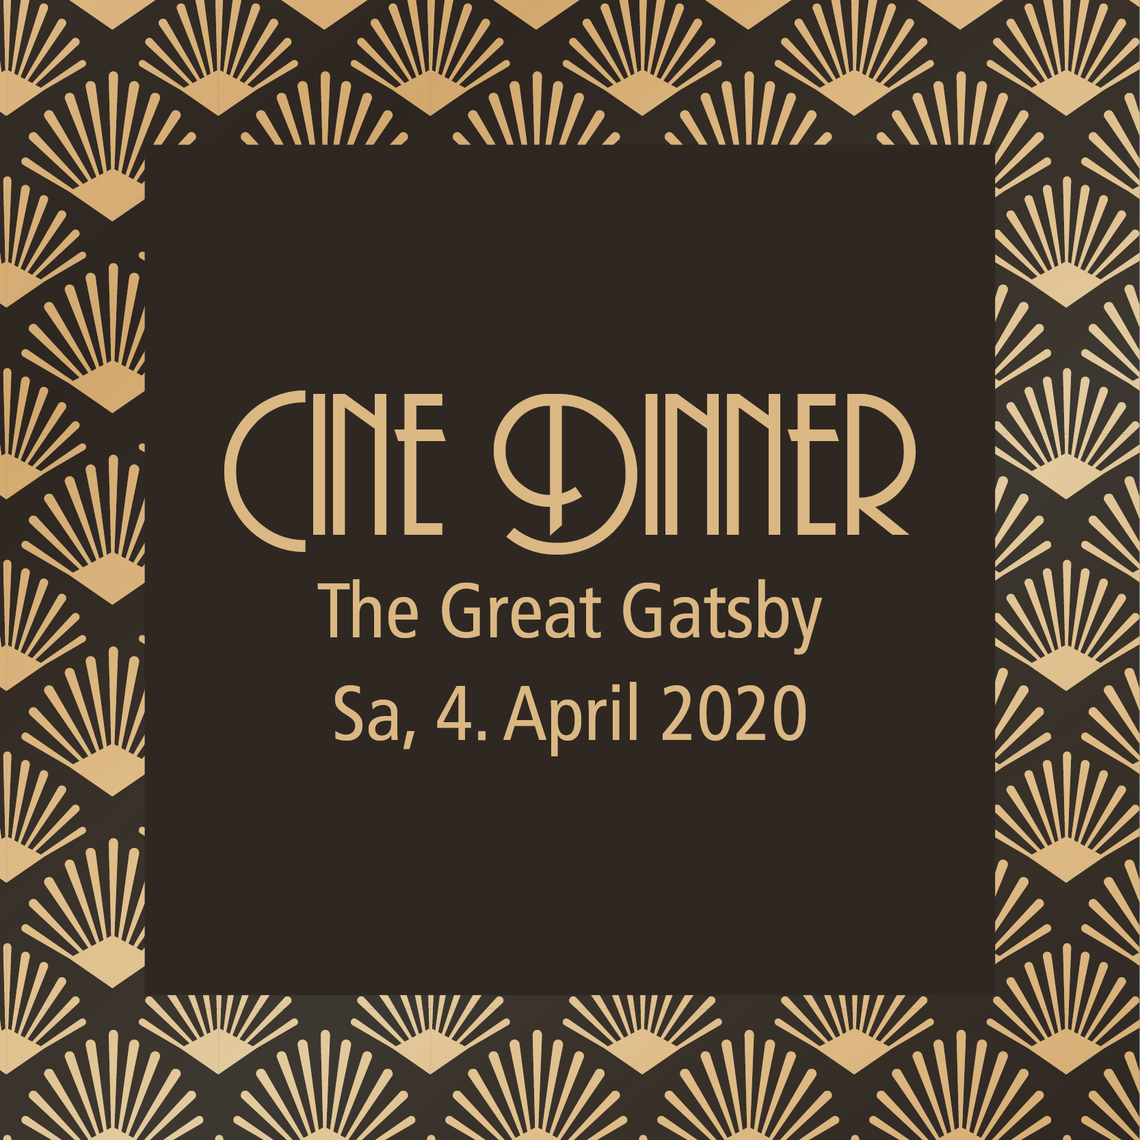 Cine Dinner - Roaring Twenties